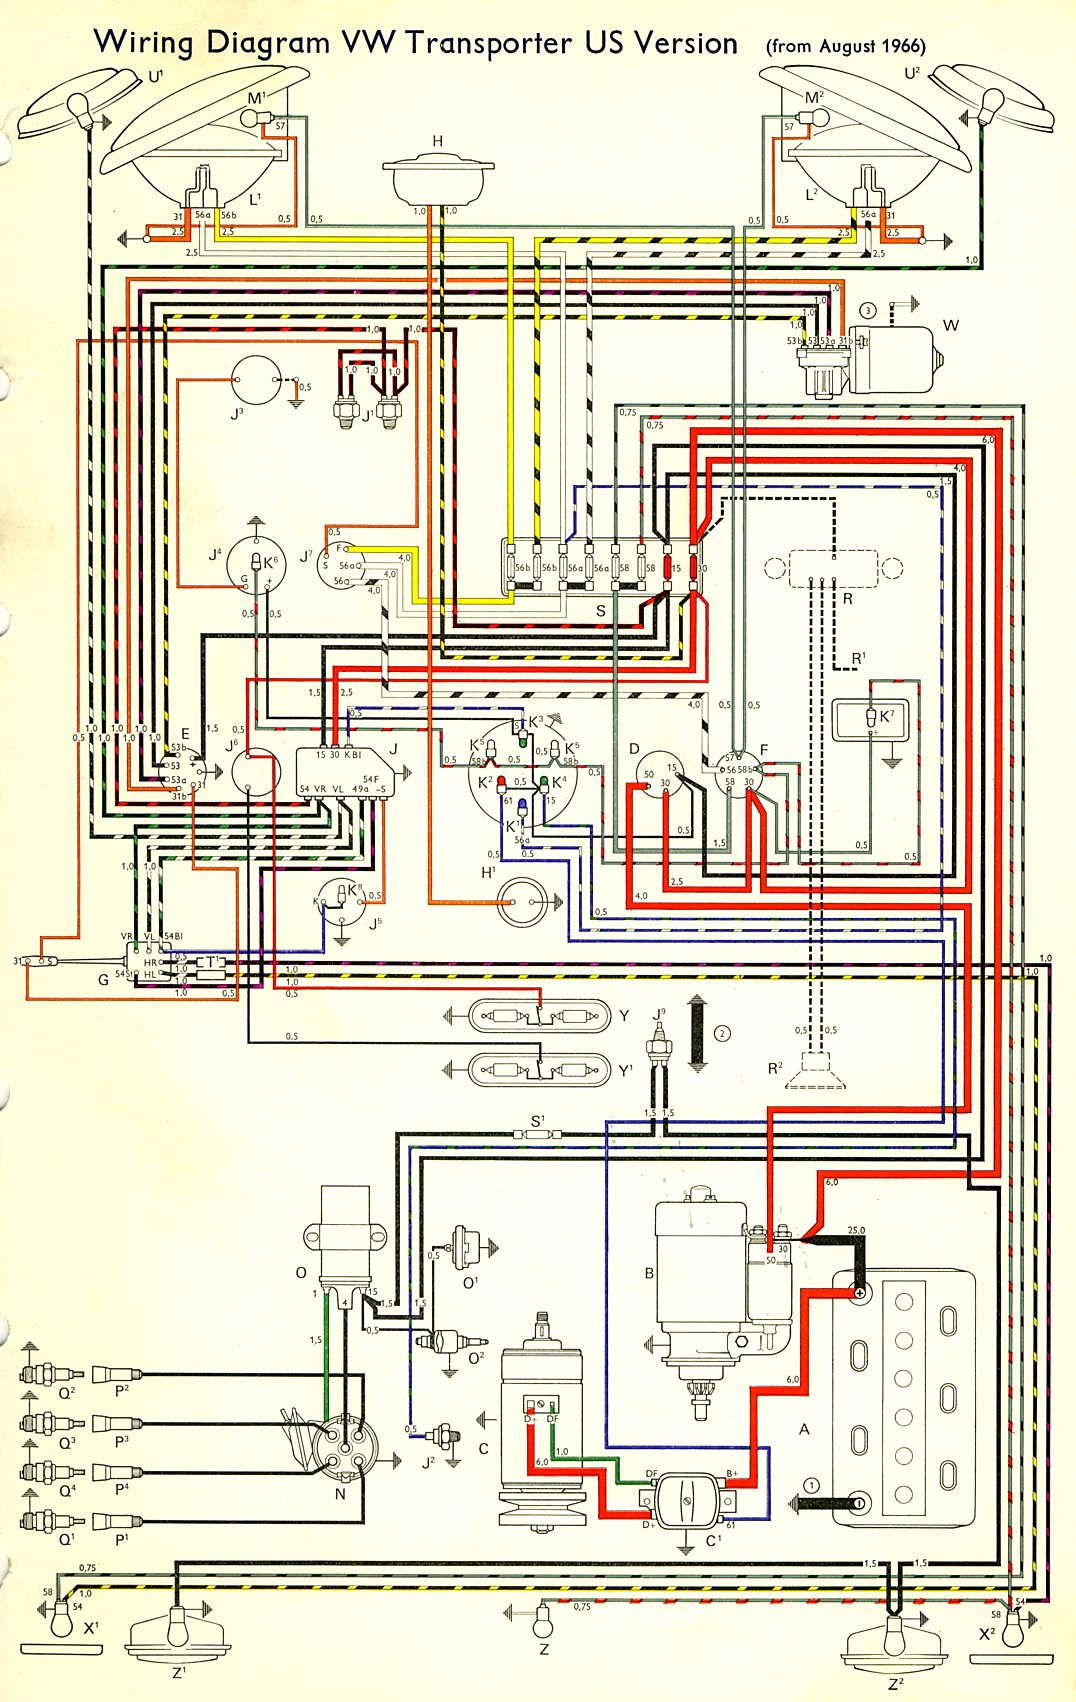 Type 2 Wiring Diagrams 70 Chevy C10 Schematic